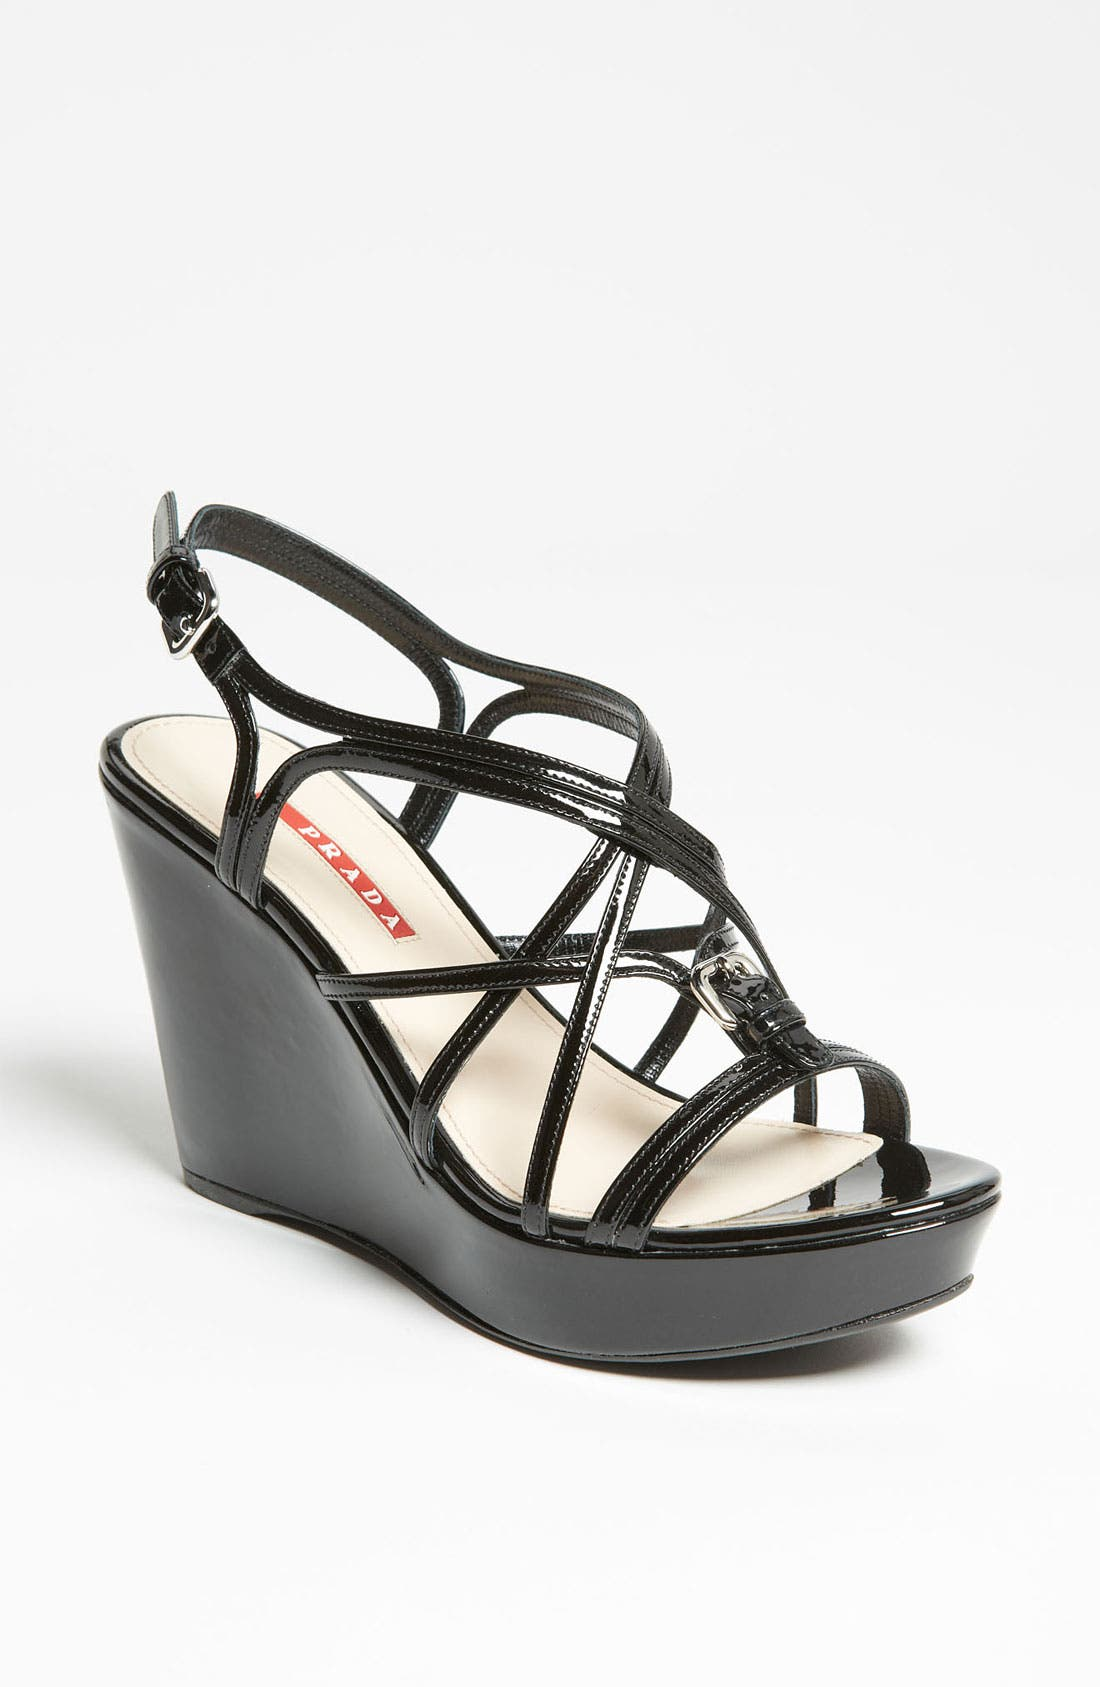 Alternate Image 1 Selected - Prada Wedge Sandal